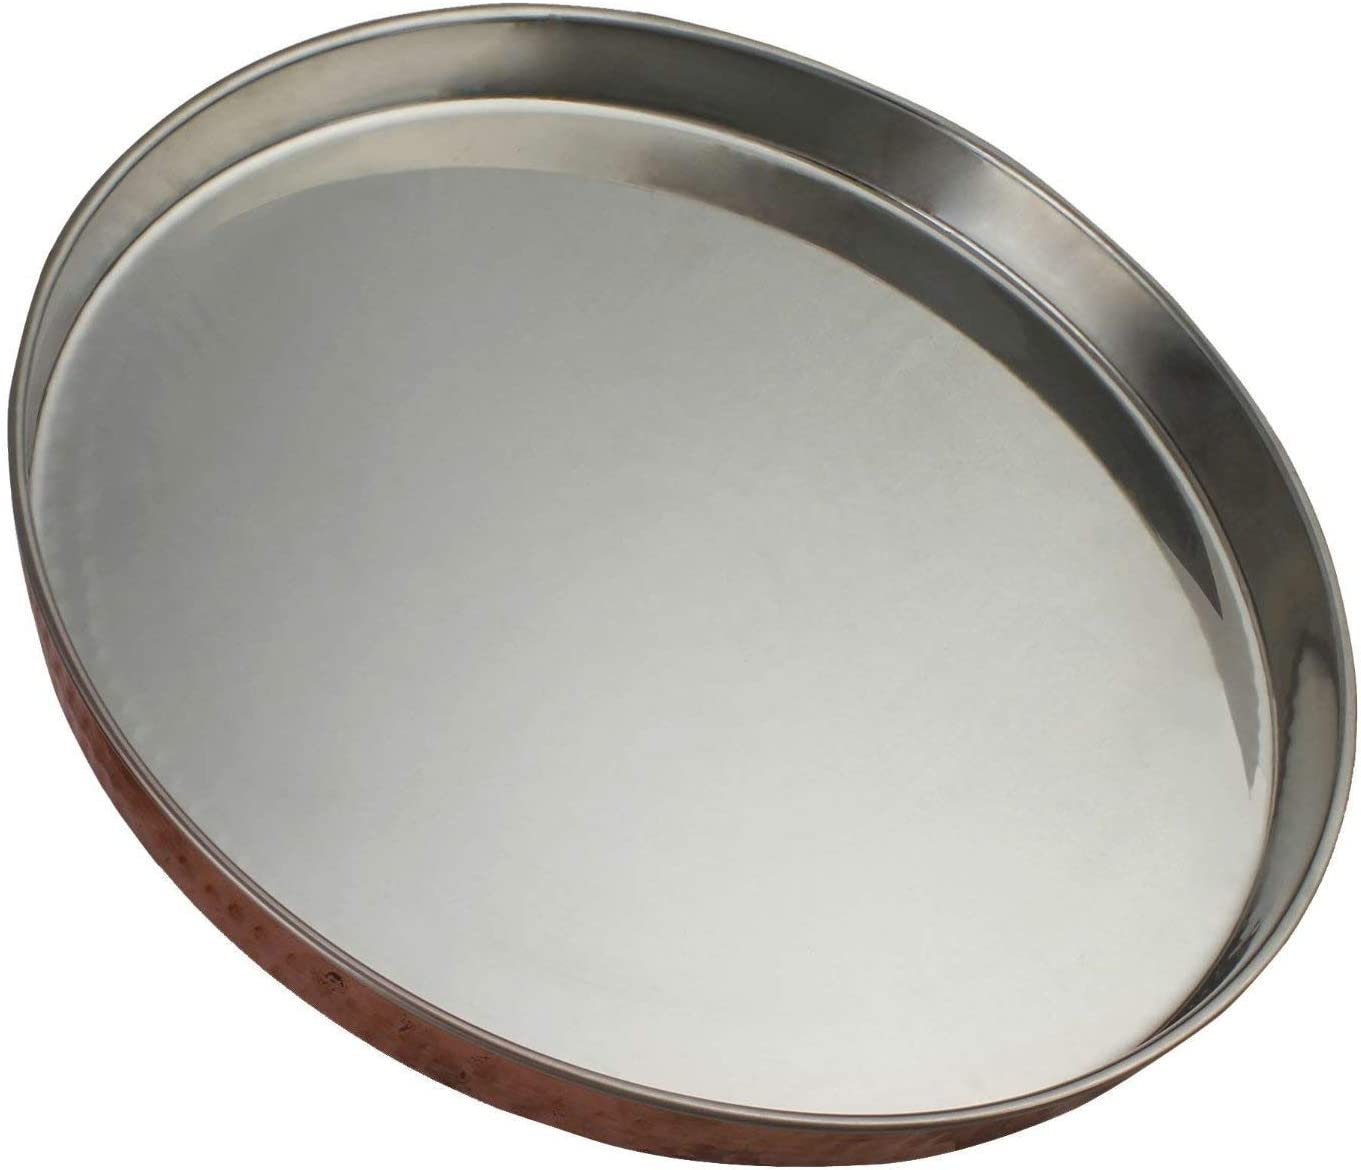 Hammered Copper & Stainless Steel Dinner Plate Thali Tableware Dinnerware for Indian Food and Dishes 12 Inches